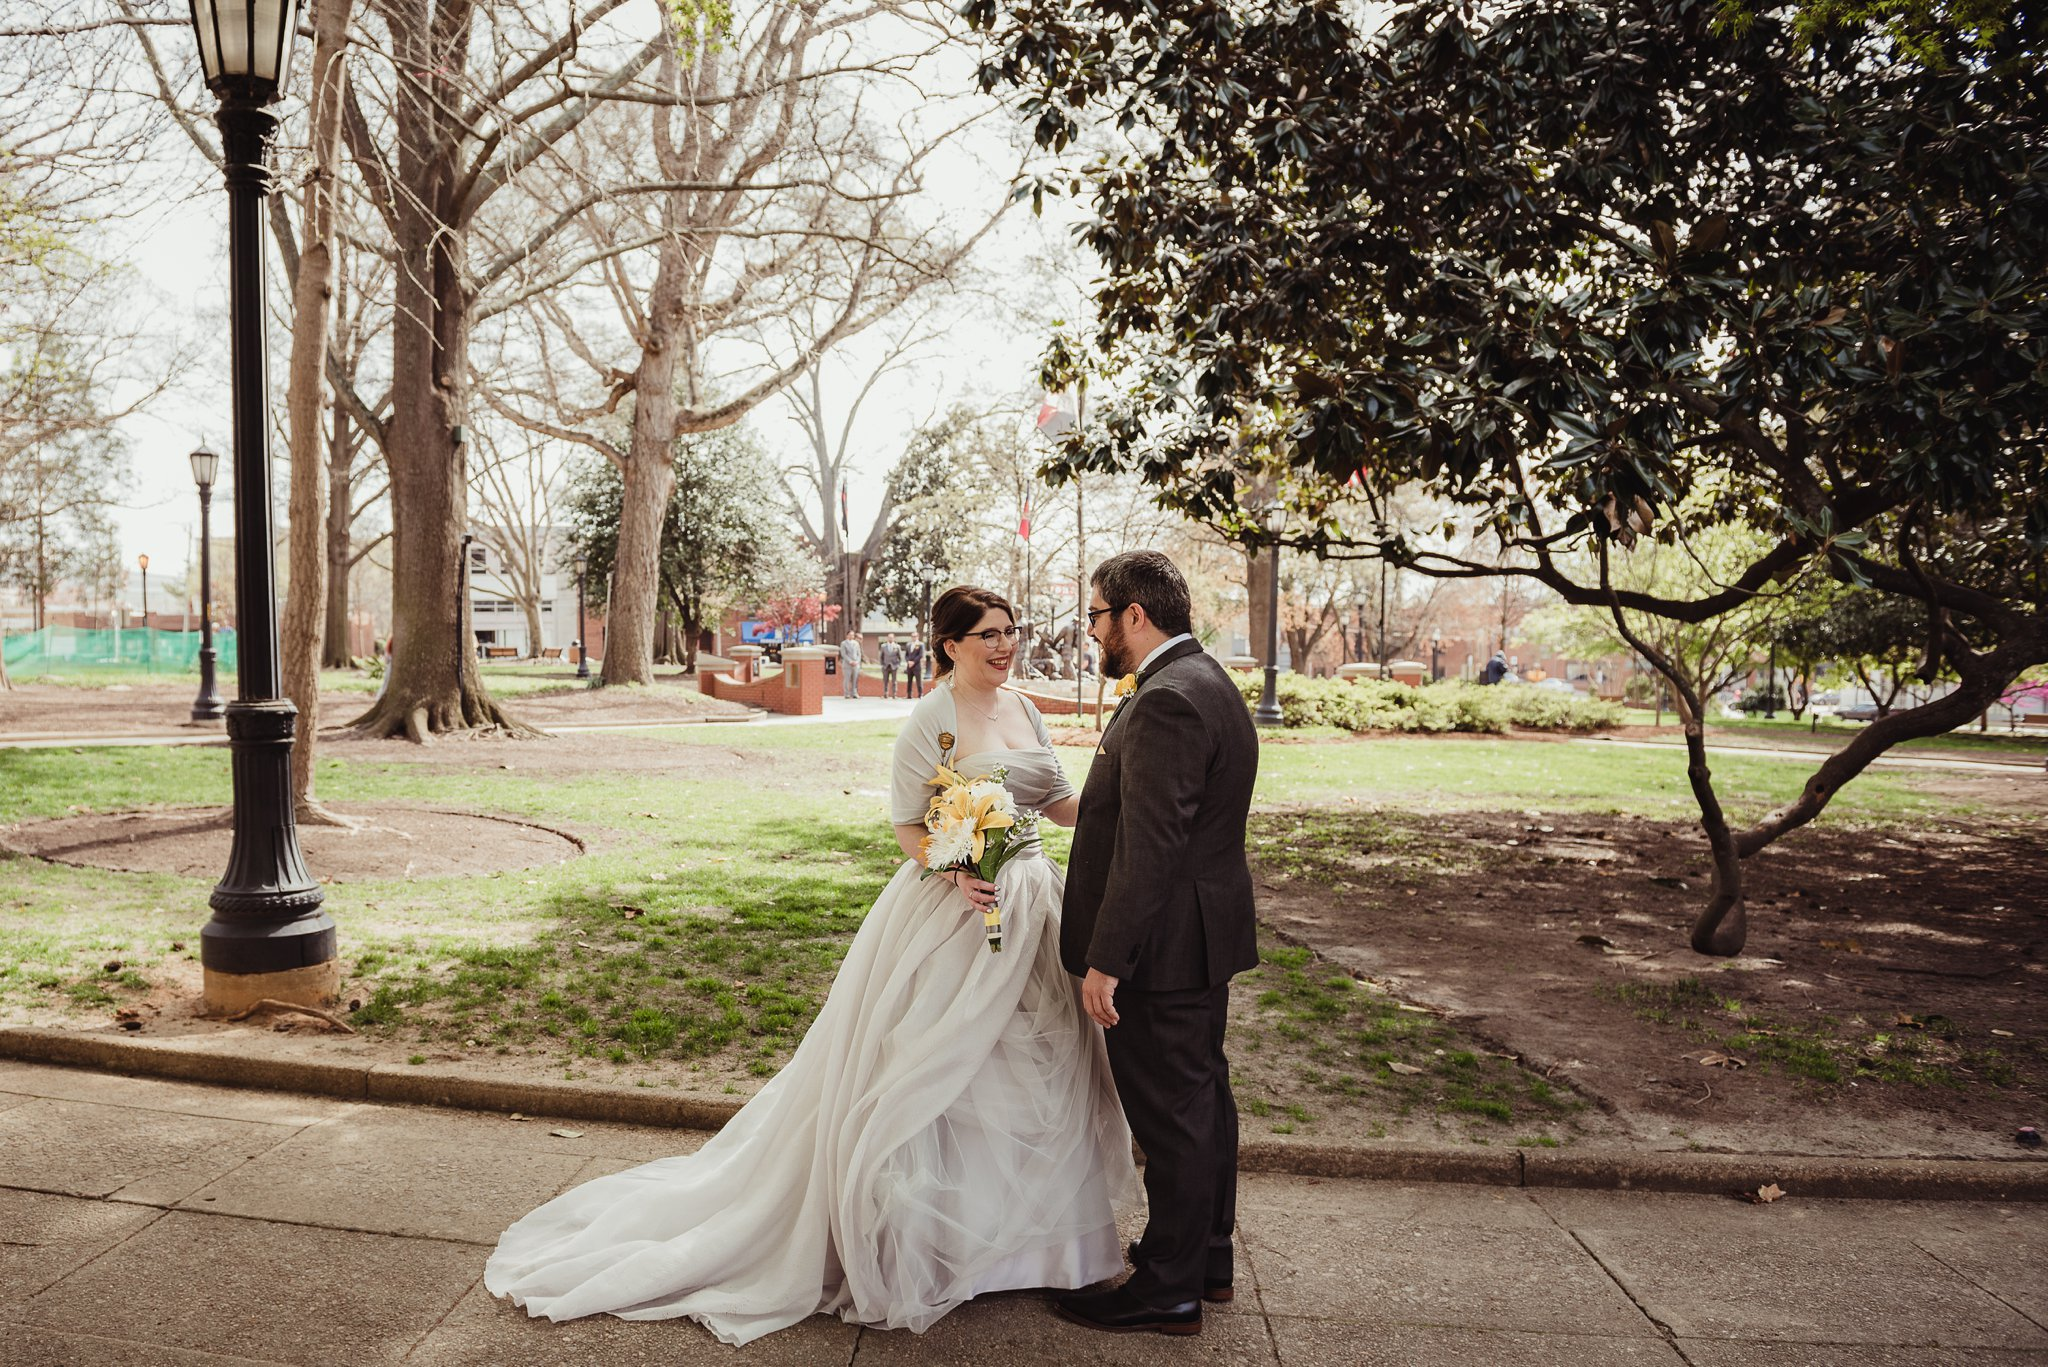 The bride and groom laugh together in the park before their wedding day in downtown Raleigh, picture by Rose Trail Images.